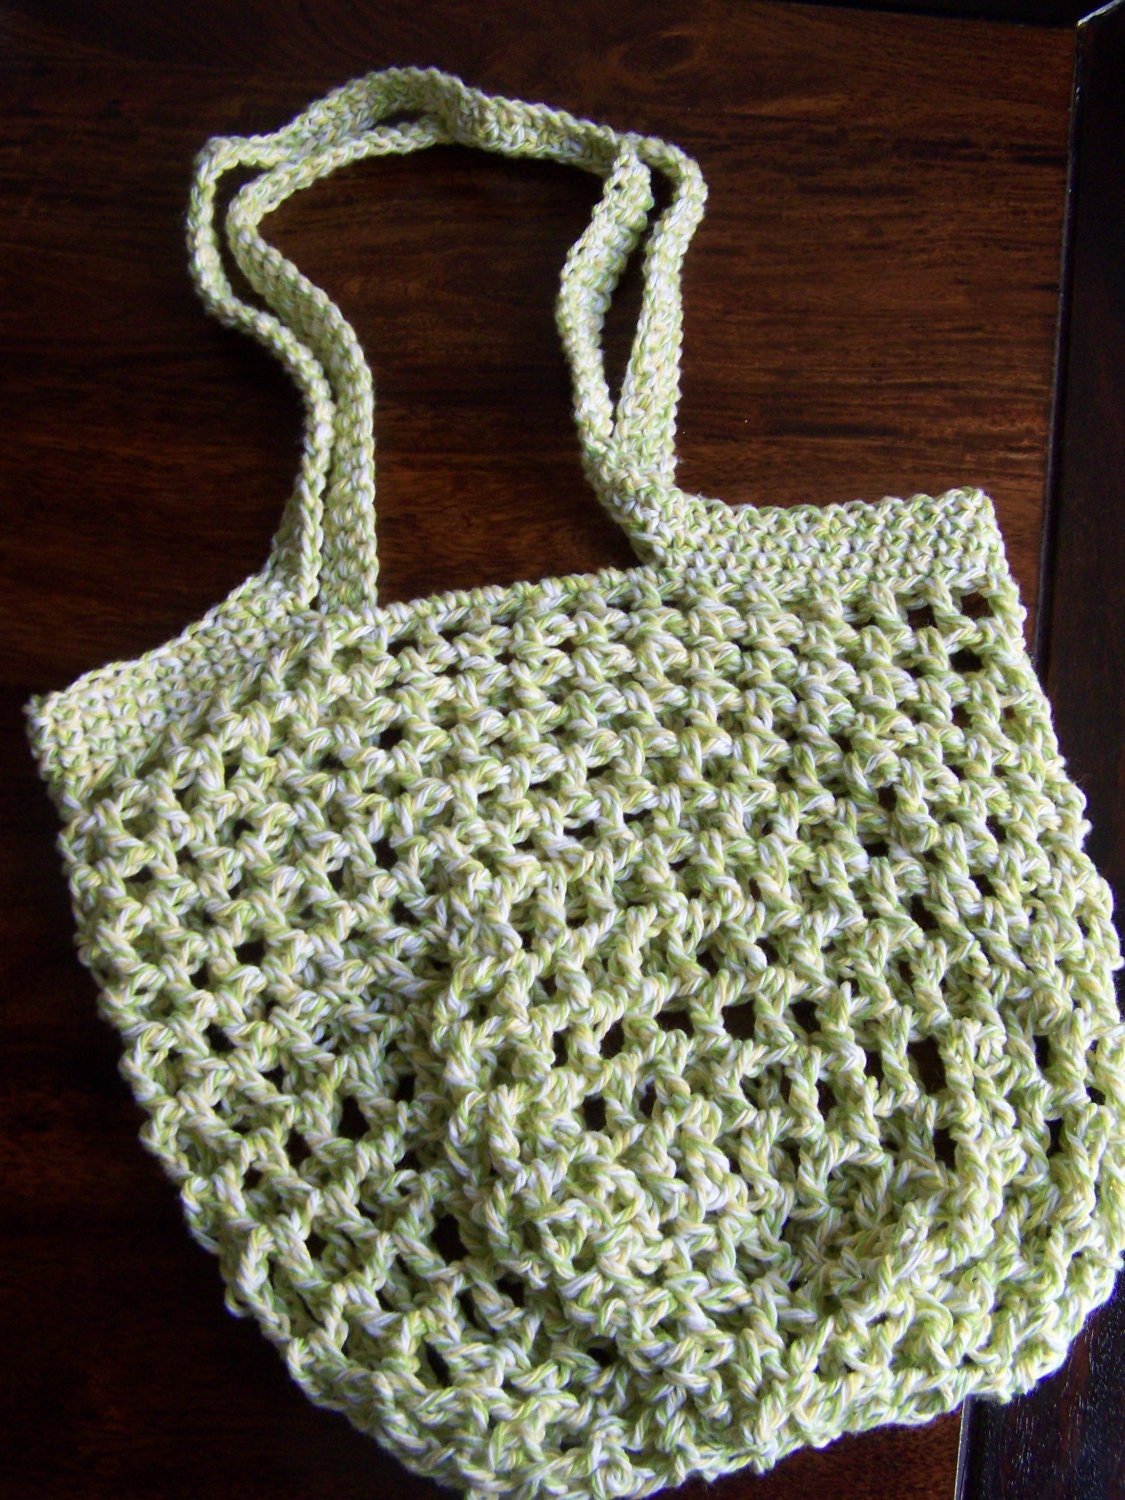 CROCHETED SHOPPING NET BAG - CROCHET PATTERNS